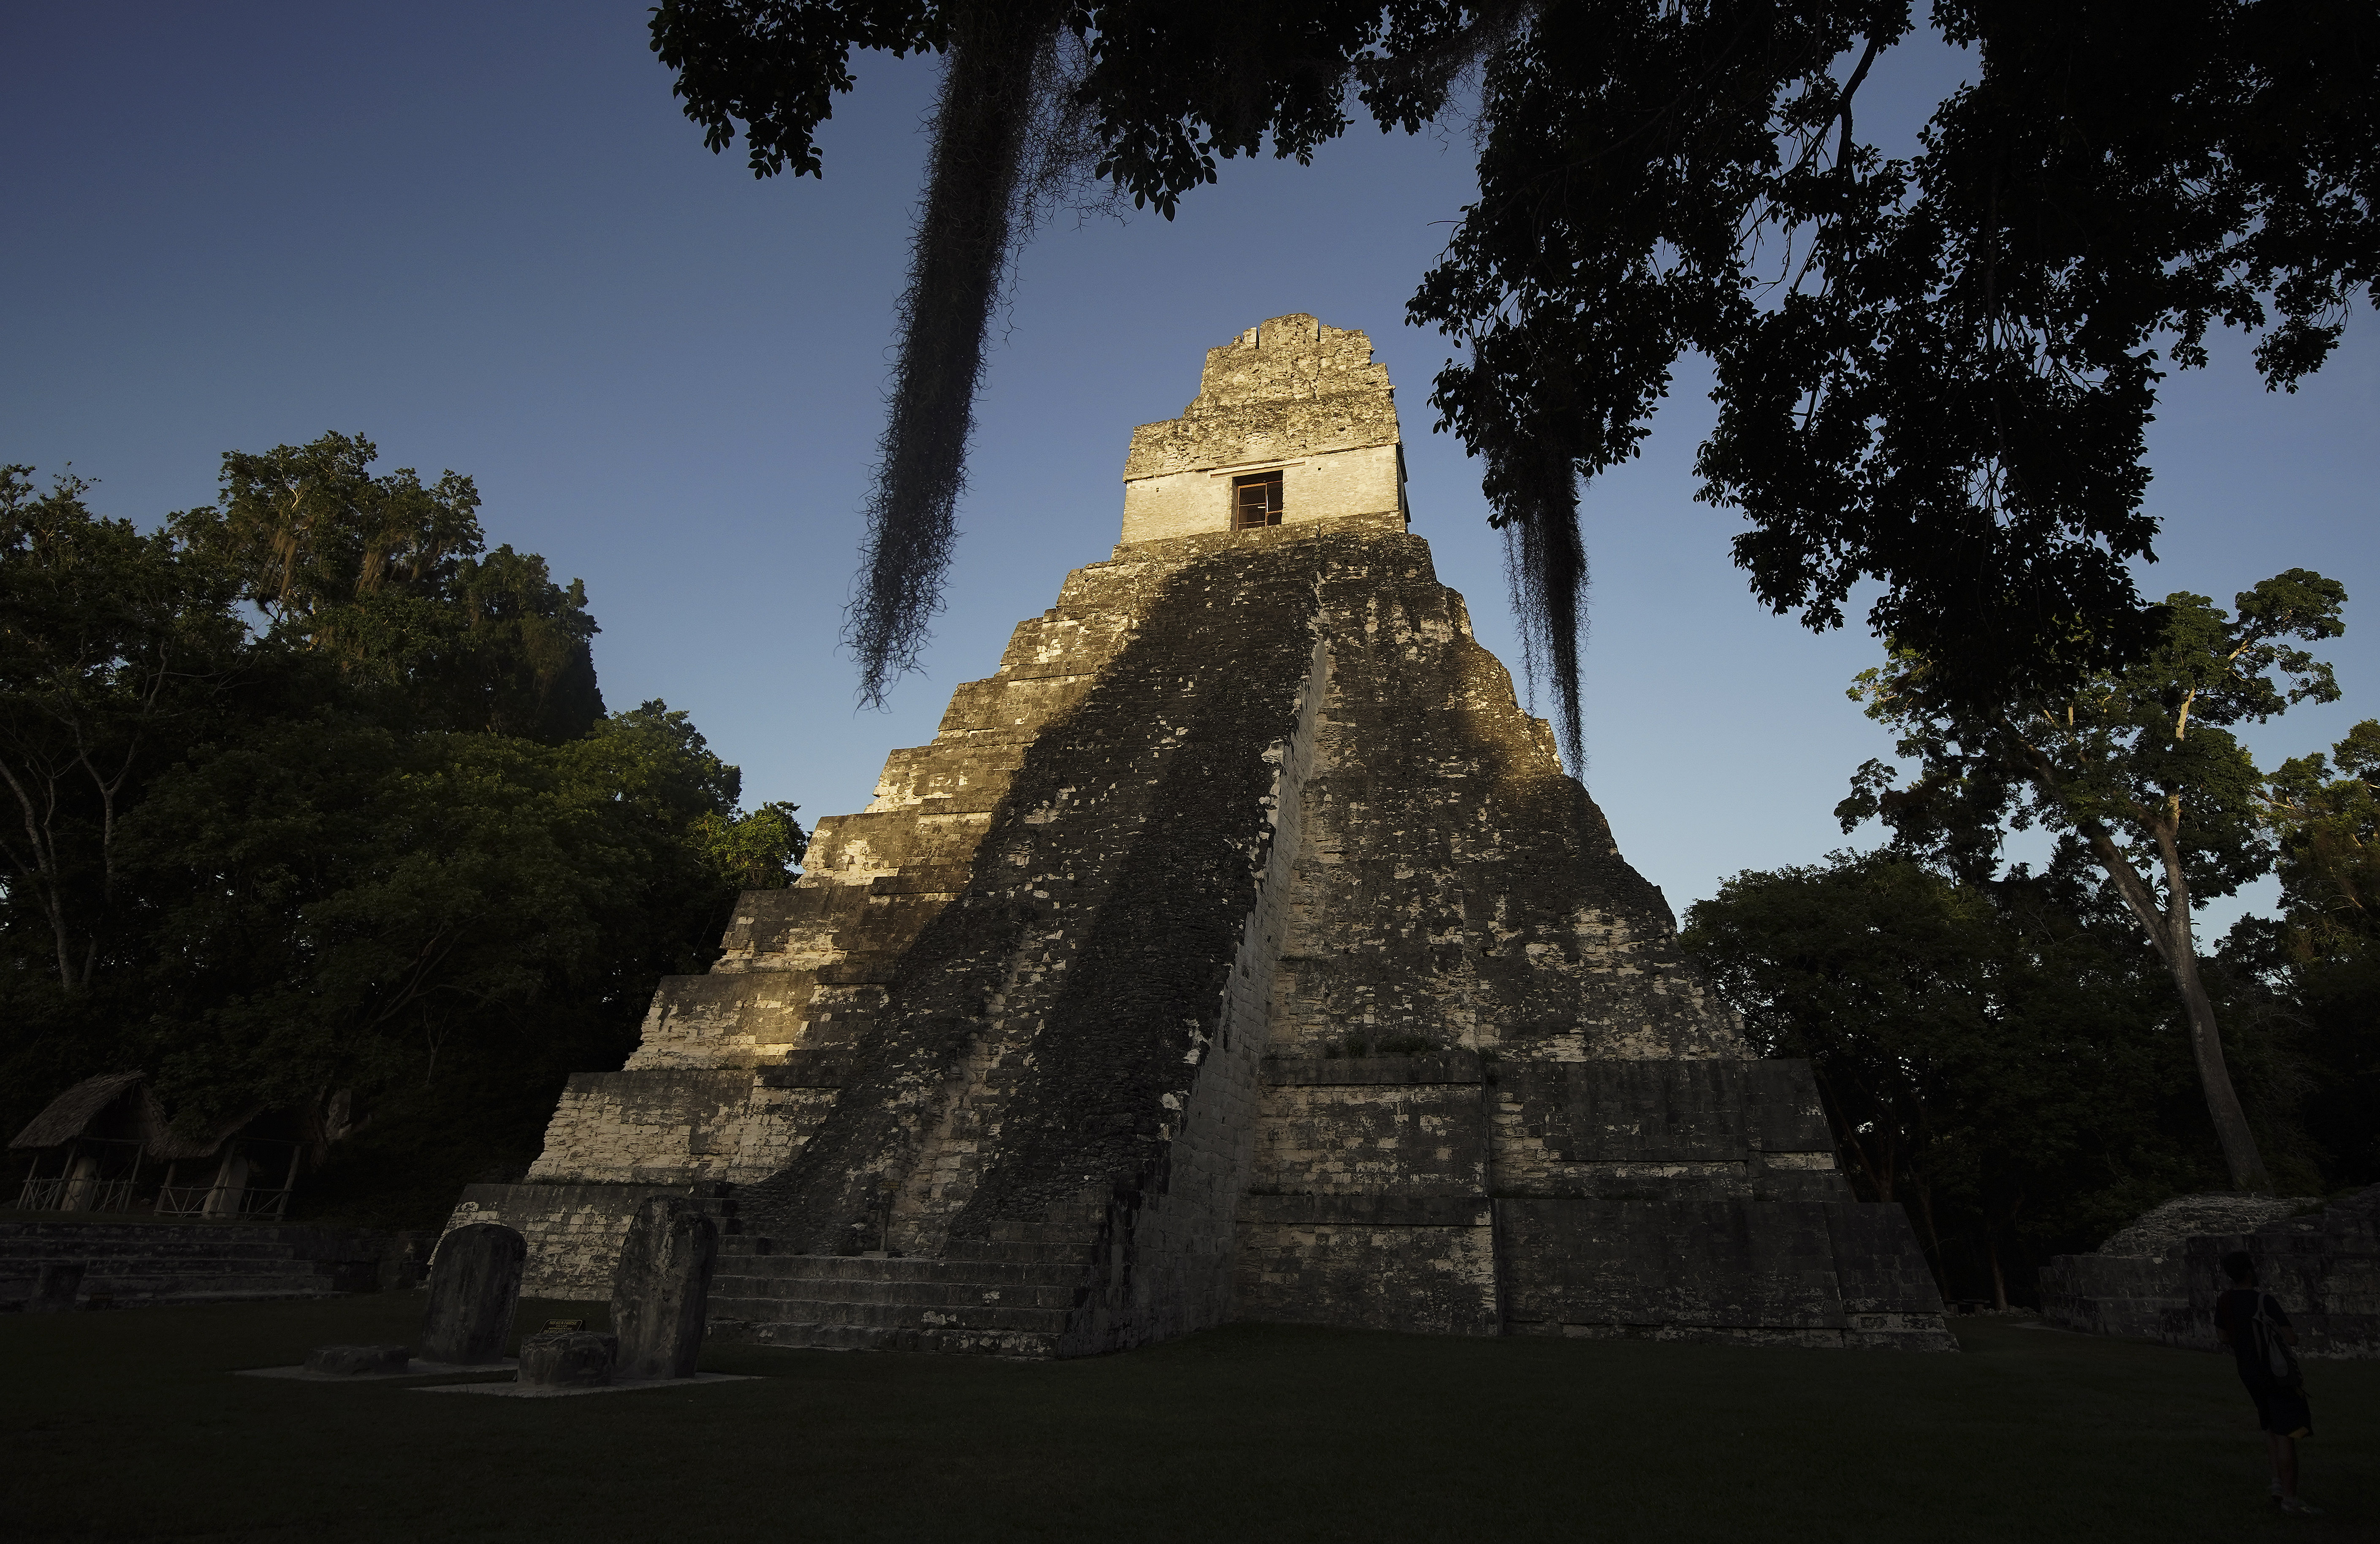 The sun sets on Mayan temple I in Tikal, Guatemala, on Thursday, Aug. 22, 2019. President Russell M. Nelson of The Church of Jesus Christ of Latter-day Saints spoke in a devotional in Guatemala City on Saturday, Aug. 24.